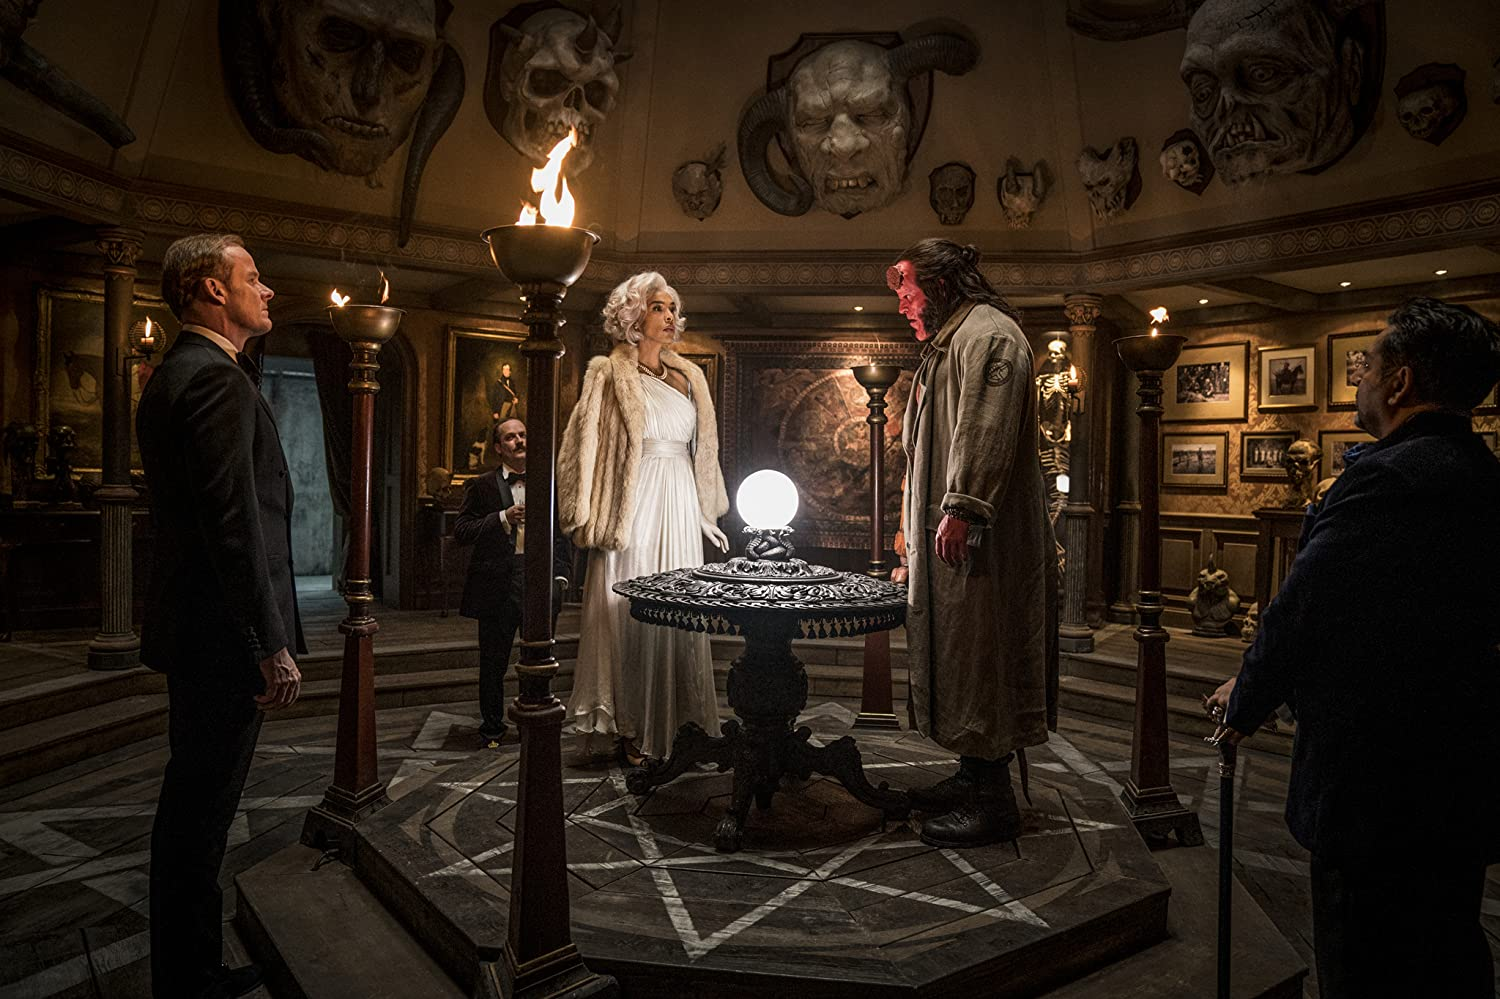 Nitin Ganatra, Michael Heath, Sophie Okonedo, Alistair Petrie, and David Harbour in Hellboy (2019)